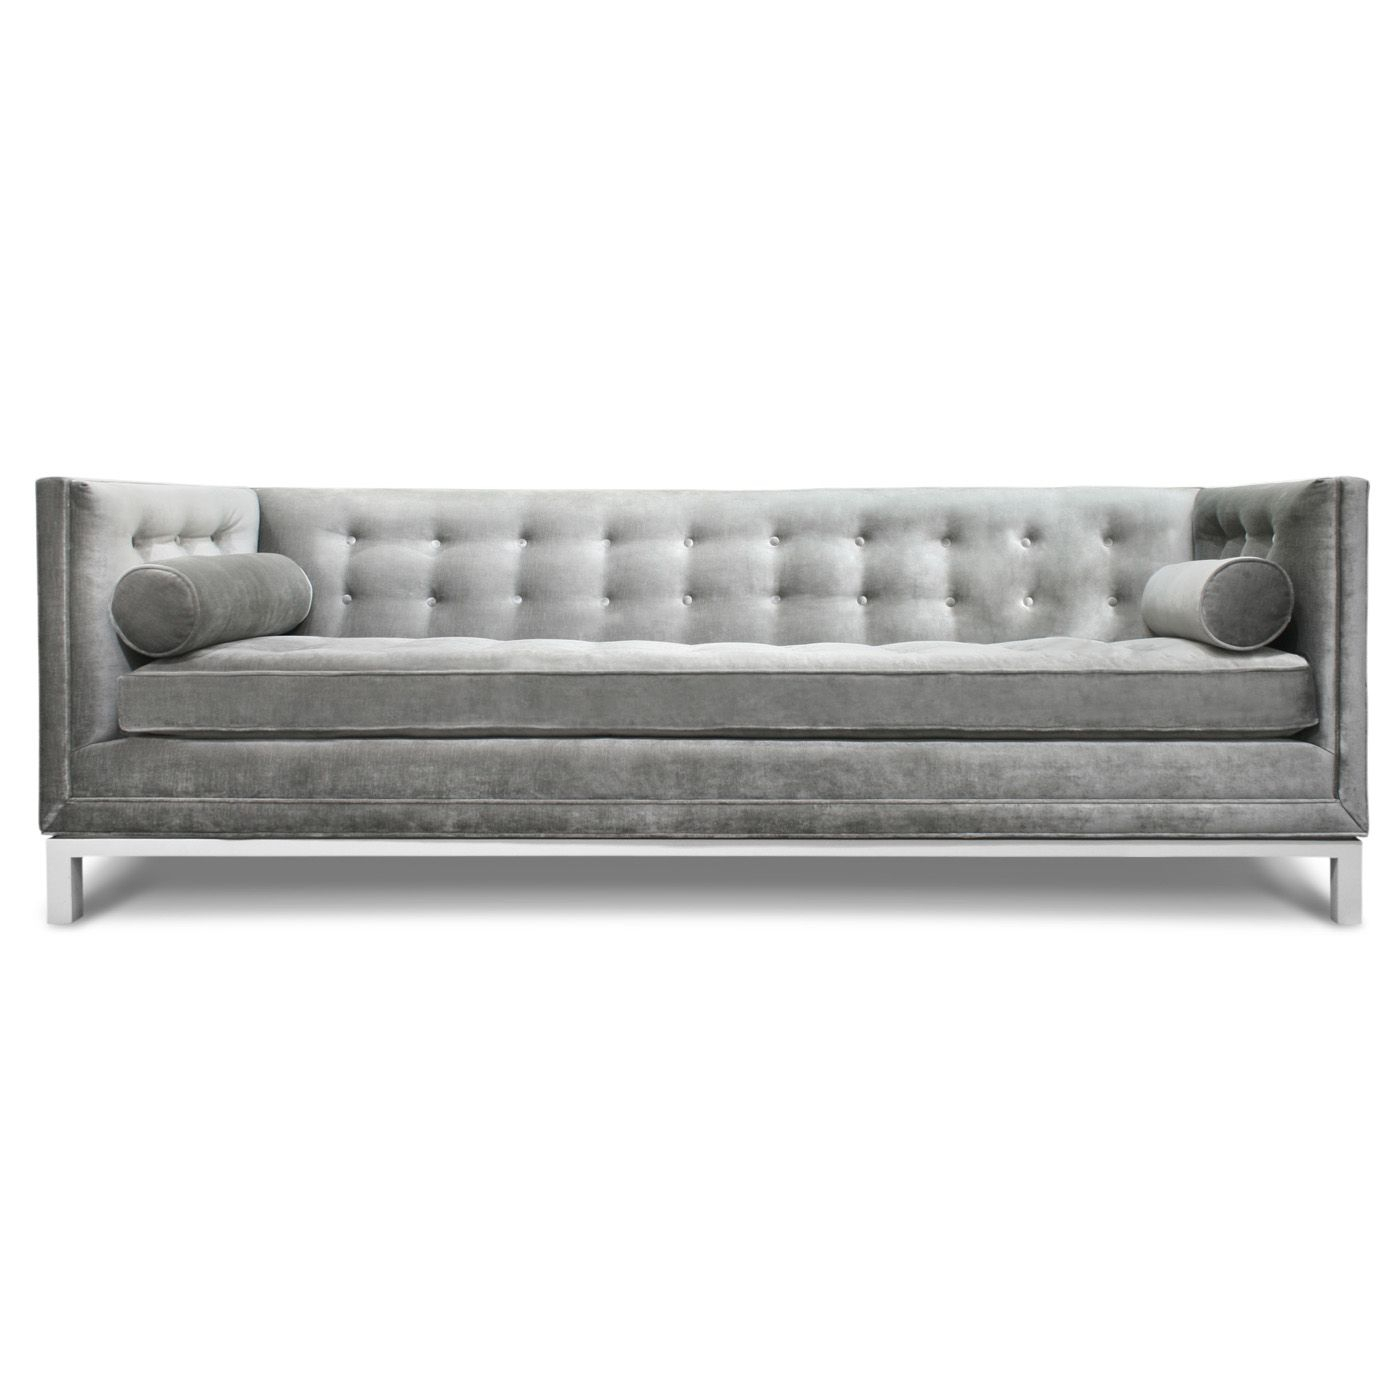 Sofas & Sectionals – Lampert Grand Sofa | Furniture | Pinterest For Alder Grande Ii Sofa Chairs (View 8 of 25)